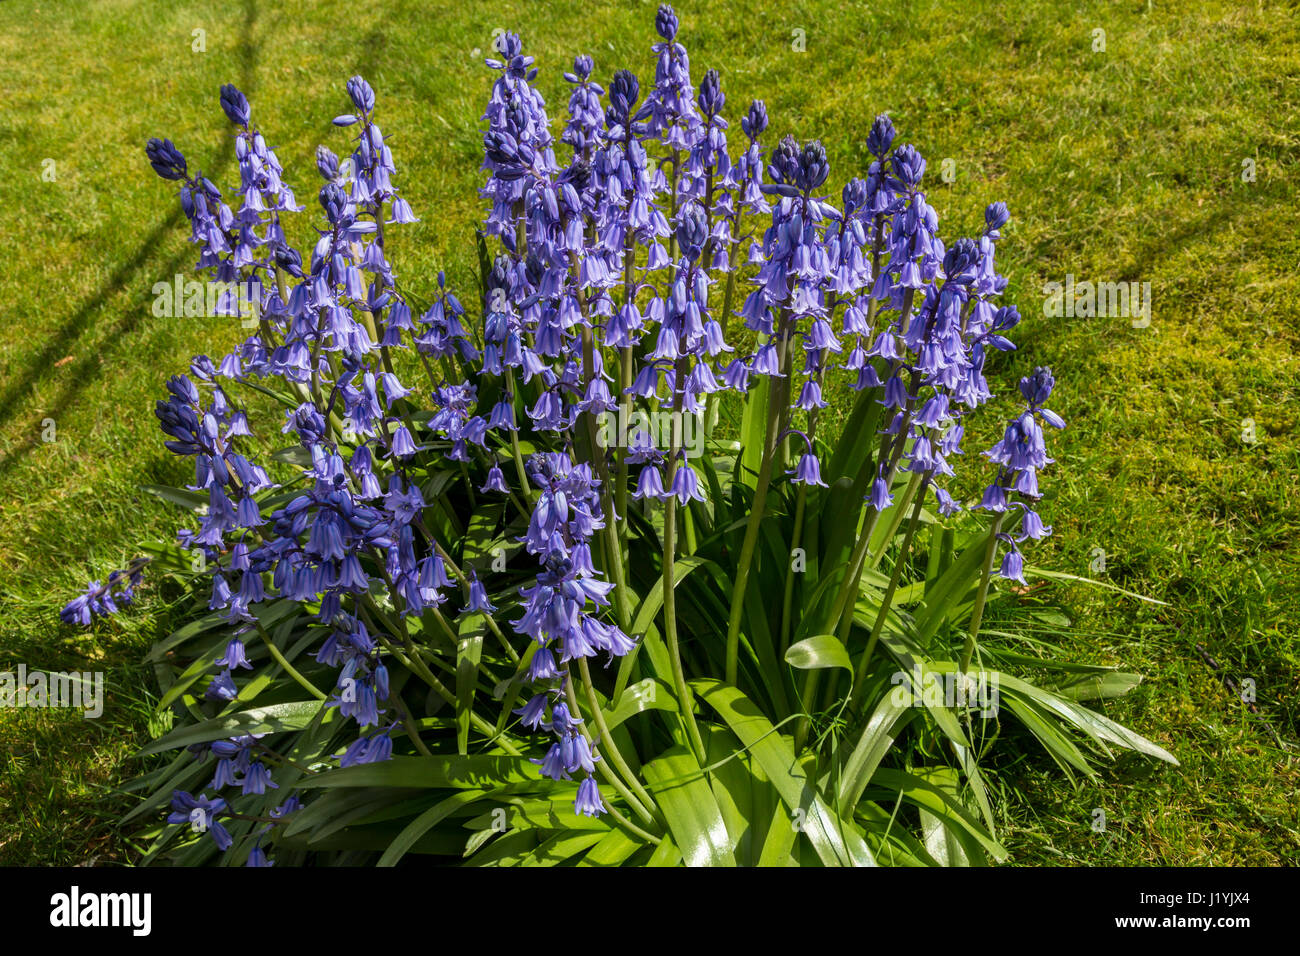 Cultivated large bluebells in a garden, Hyacinthoides non-scripta - Stock Image